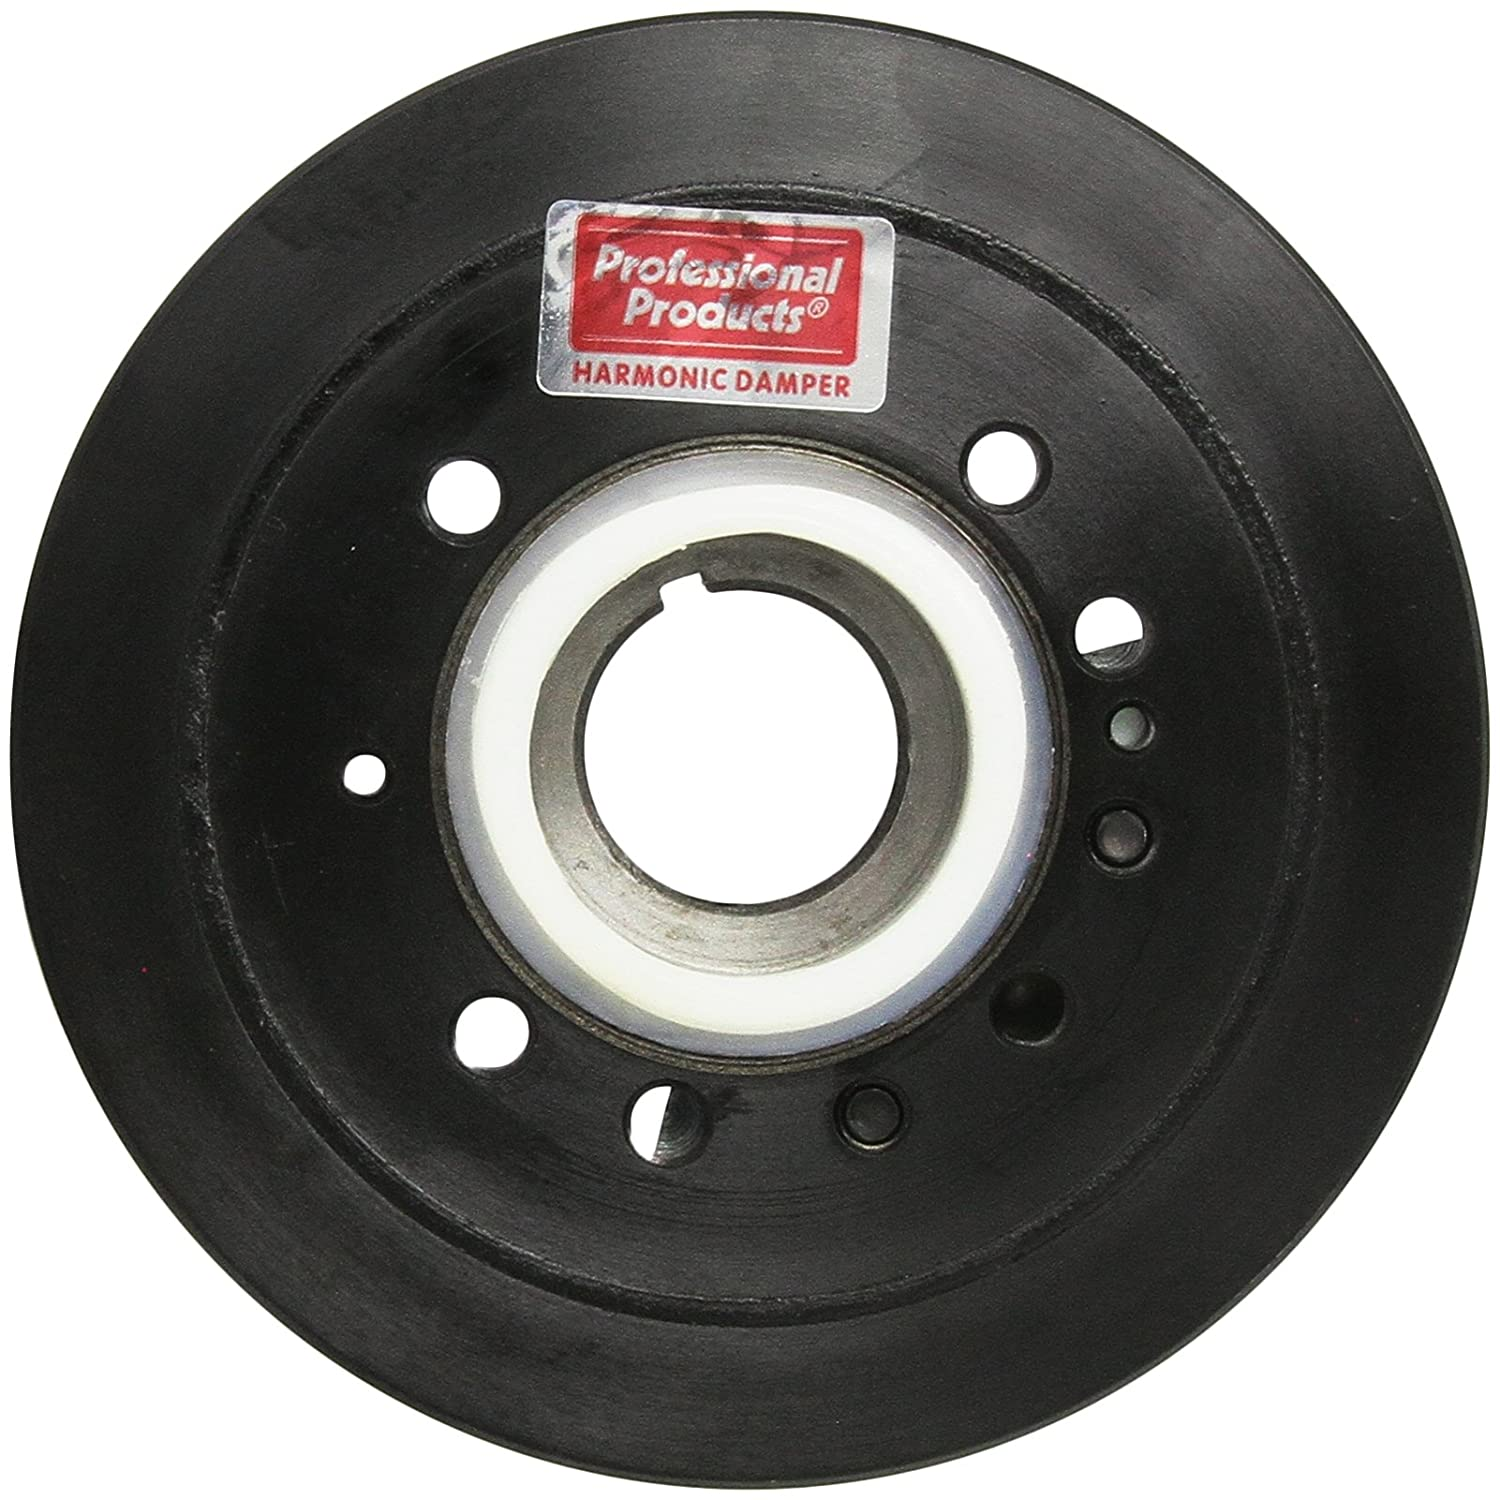 Professional Products 6.4 Harmonic Damper for Small Block Ford 80006